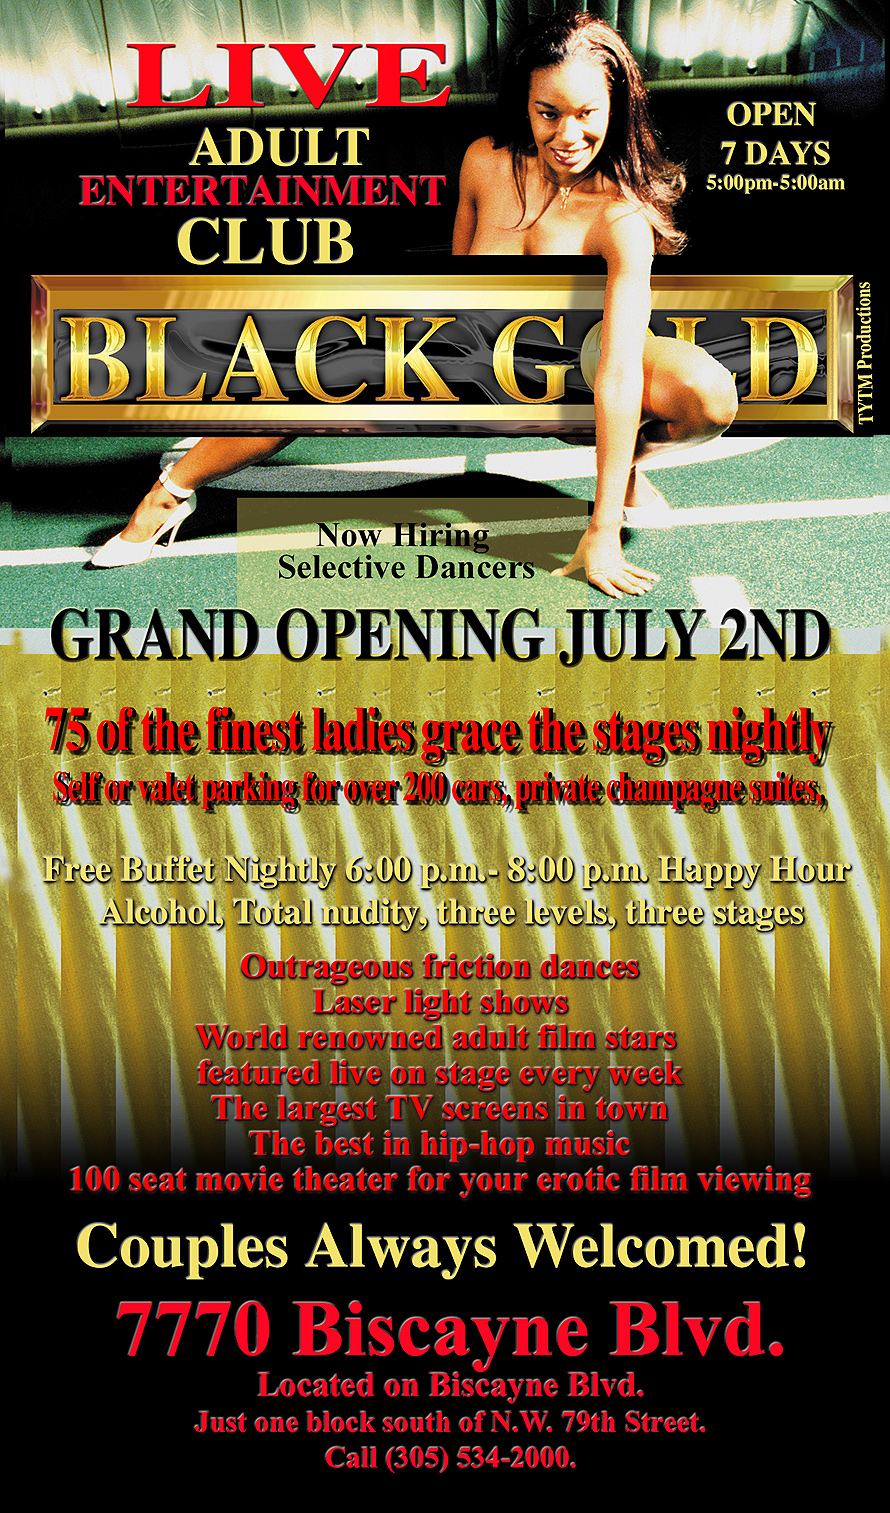 Black Gold Adult Entertainment Club Crystal